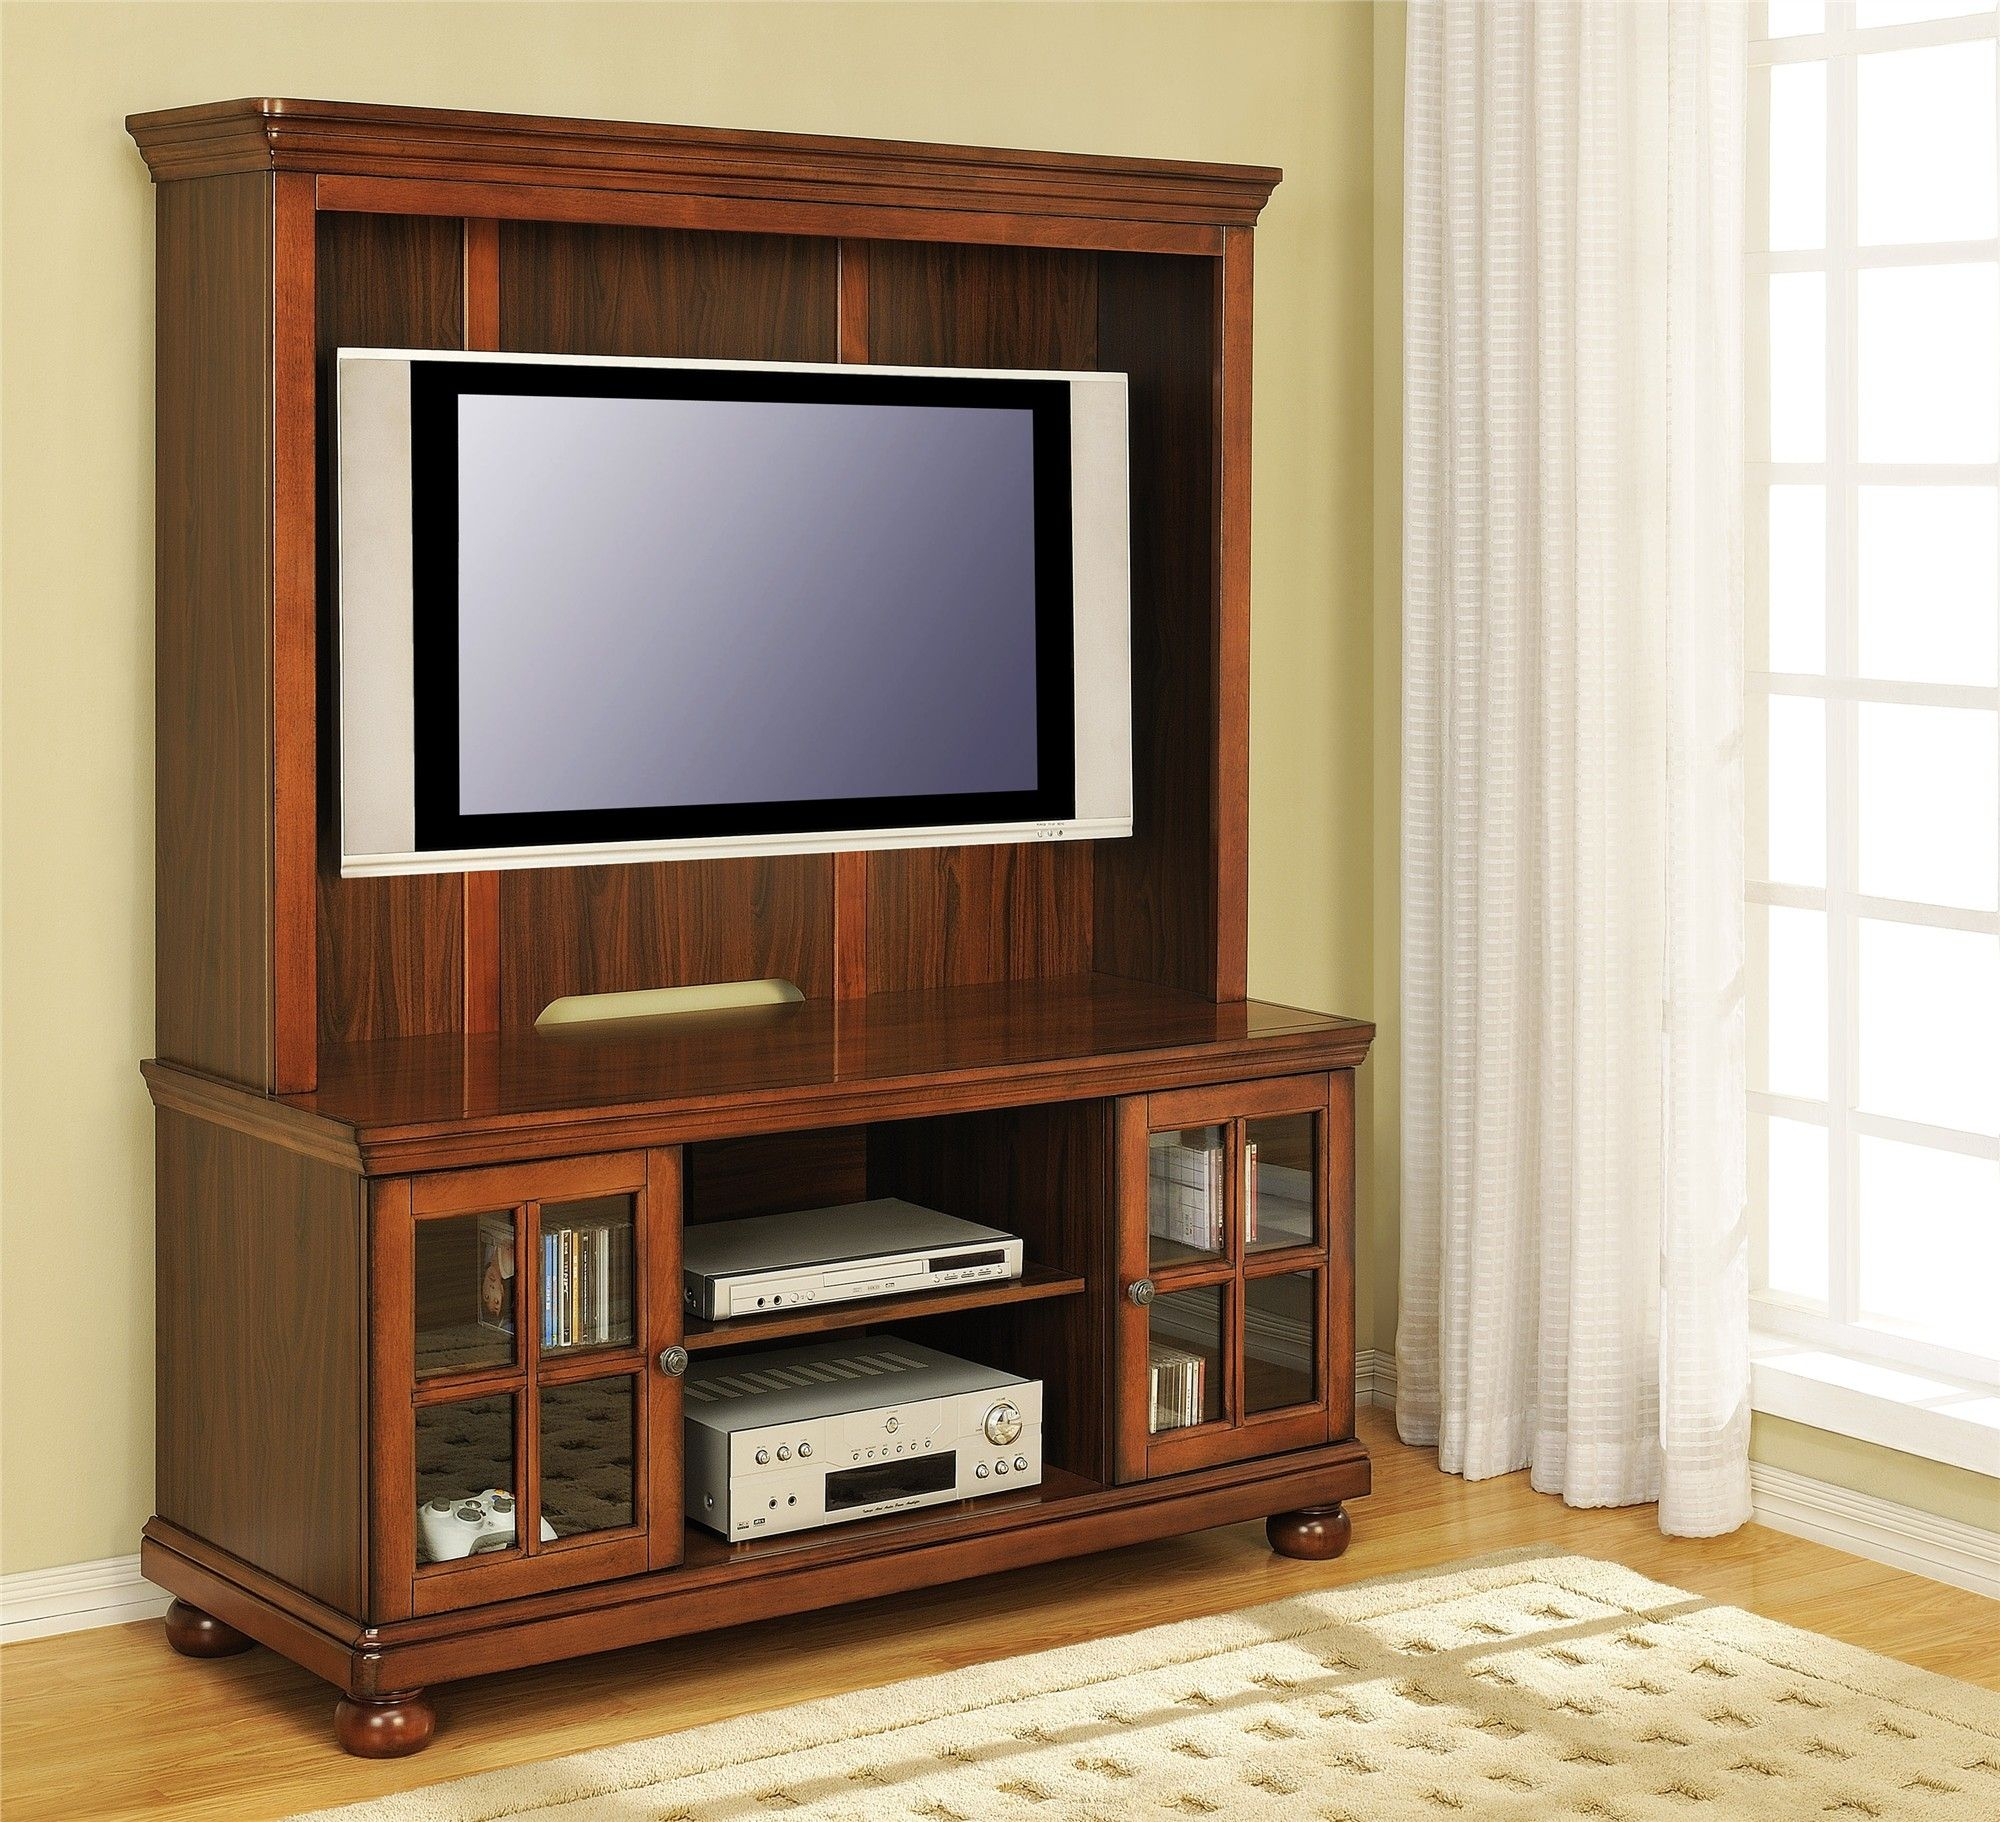 Better Homes and Gardens TV stand and